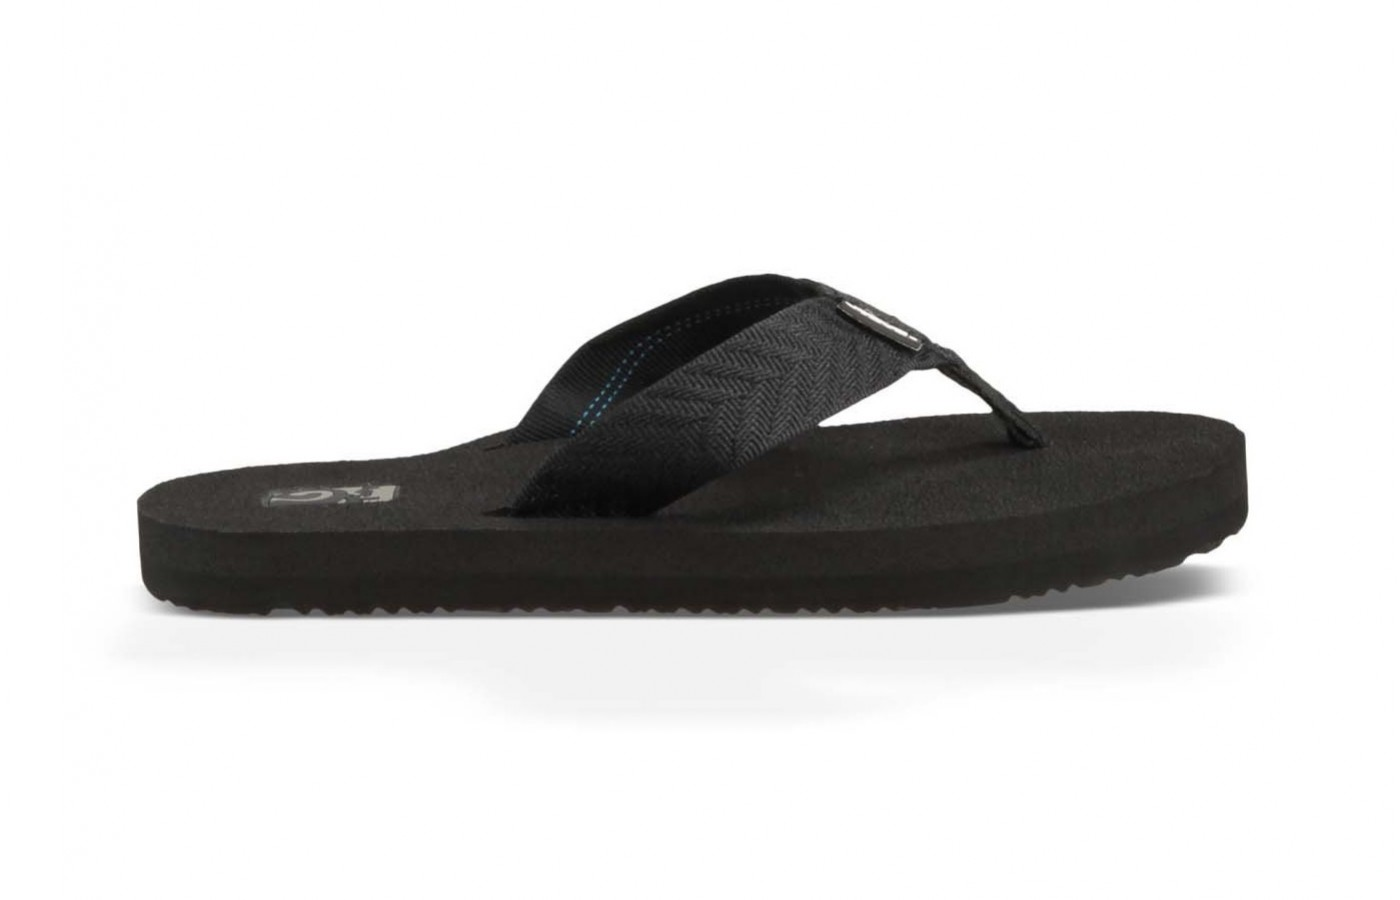 The Teva Mush offers quick dry features for better comfort in and out of water.